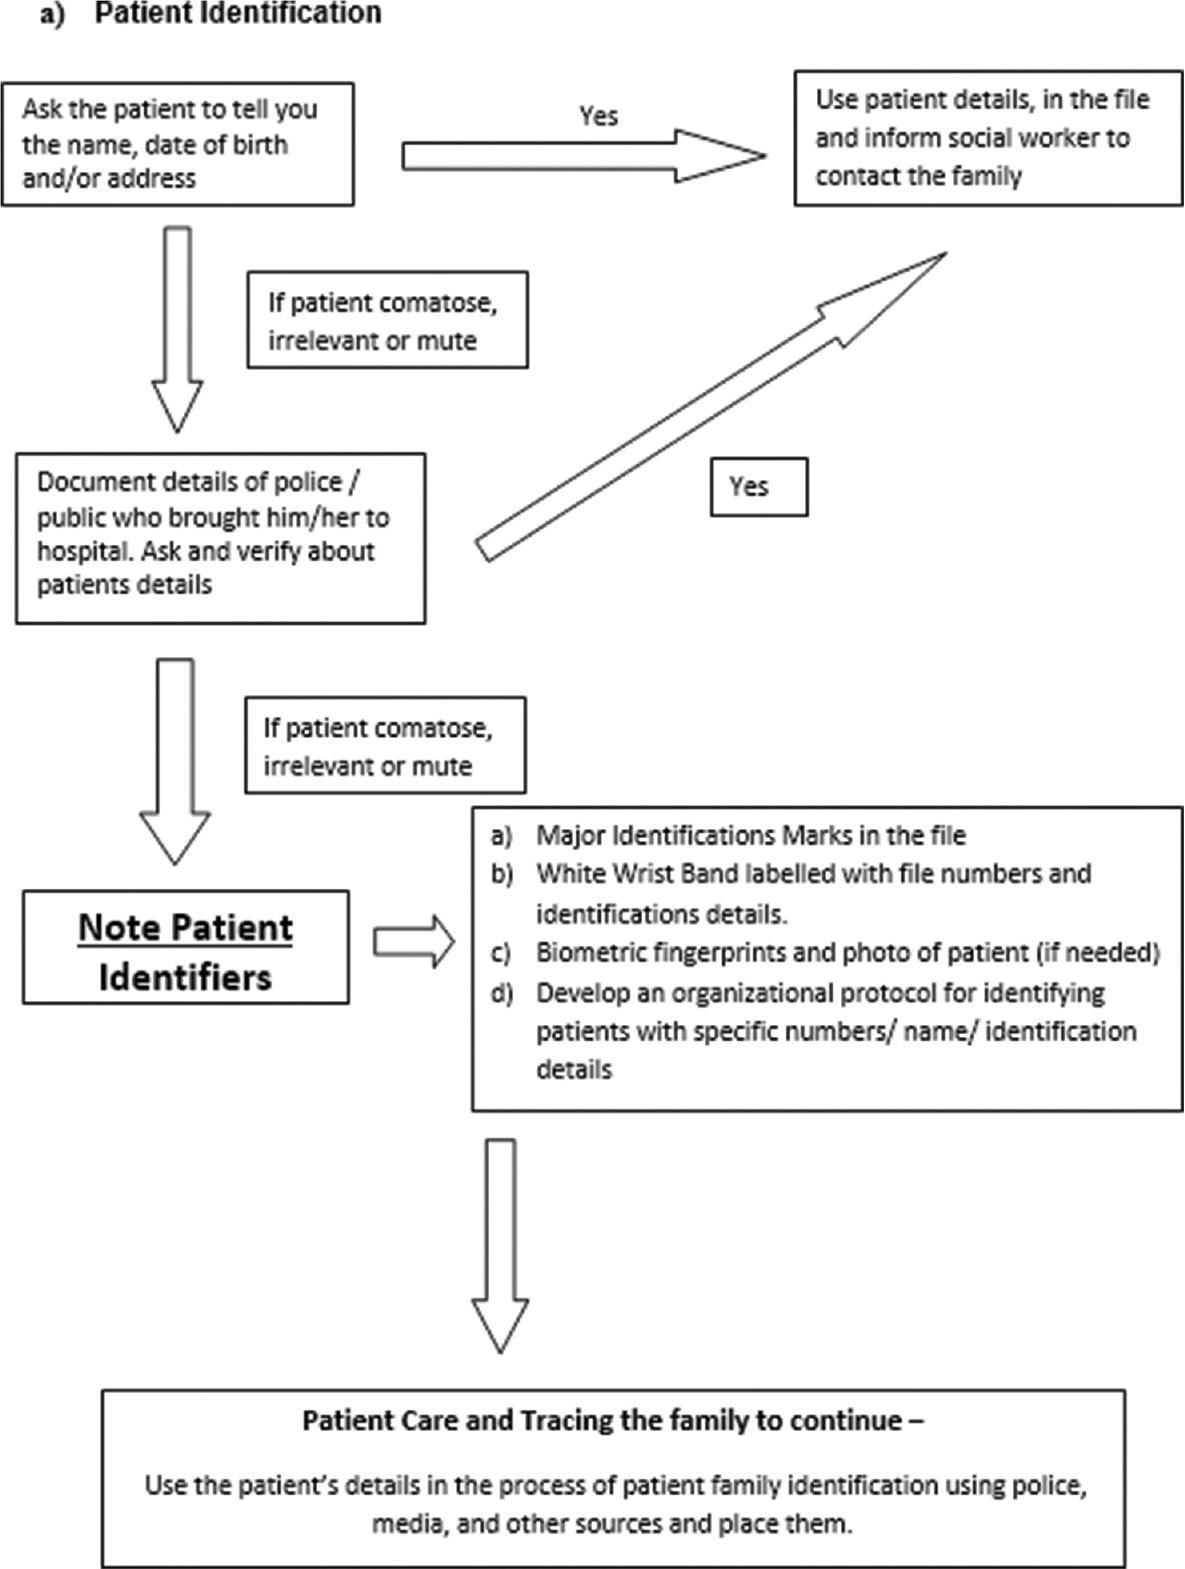 Unknown patients and neurology casualty services in an